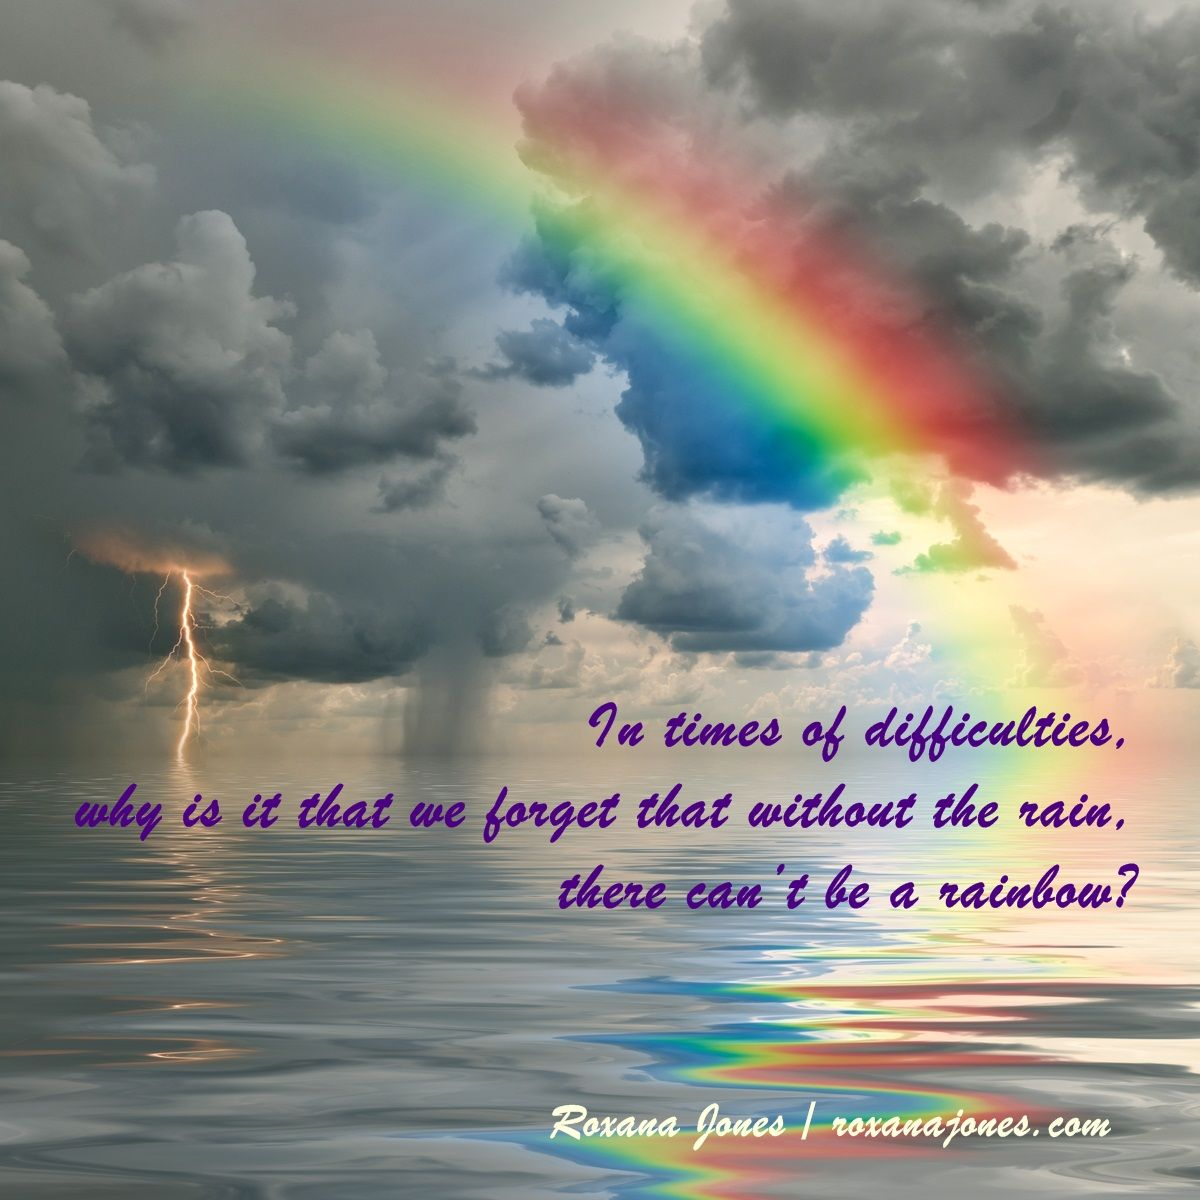 Rainbow Quotes For Motivation At Work: Inspirational Quote: A Rainbow Of Hope